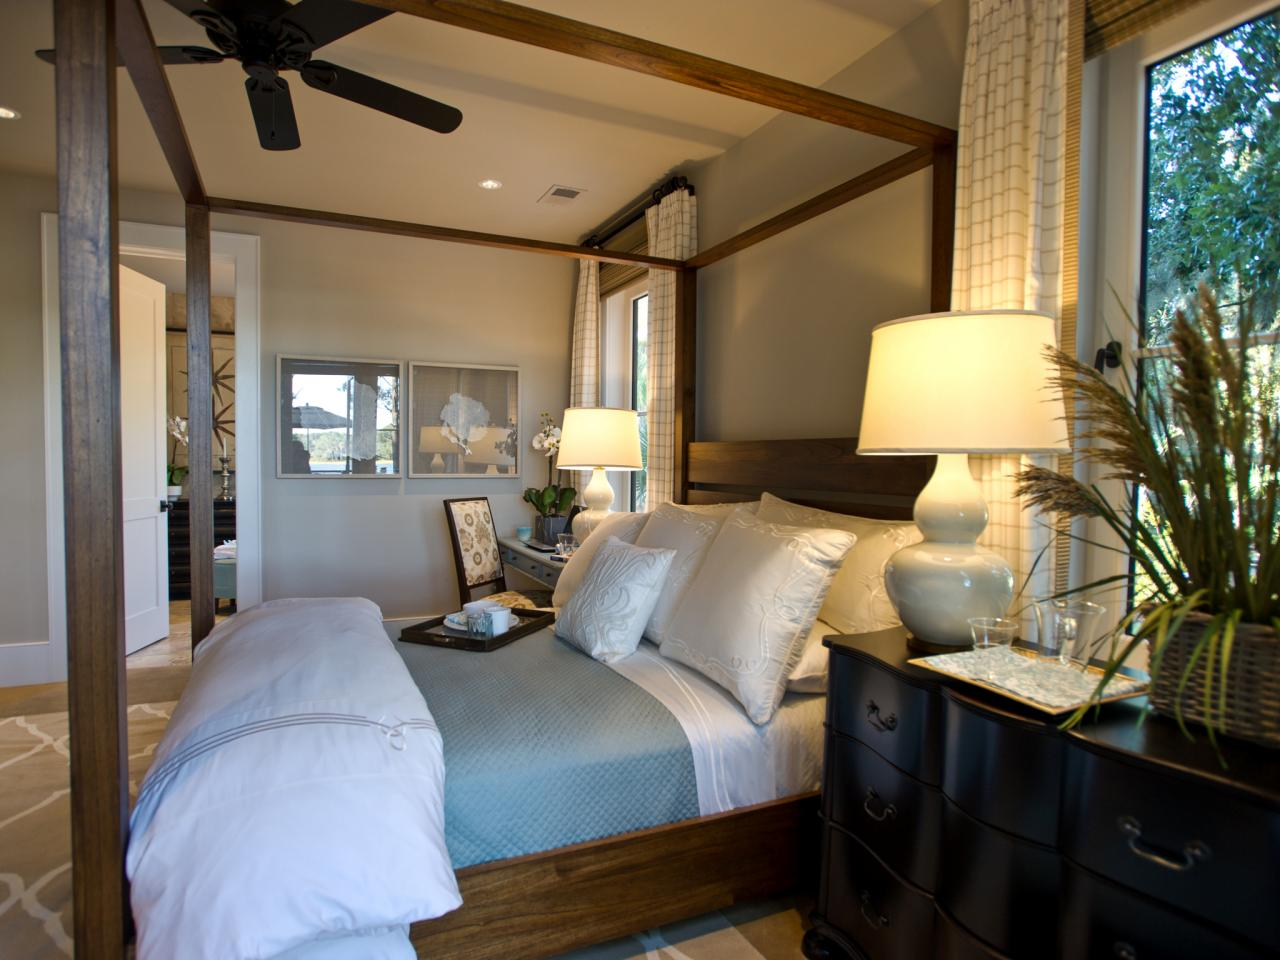 hgtv master bedroom photo page hgtv 11787